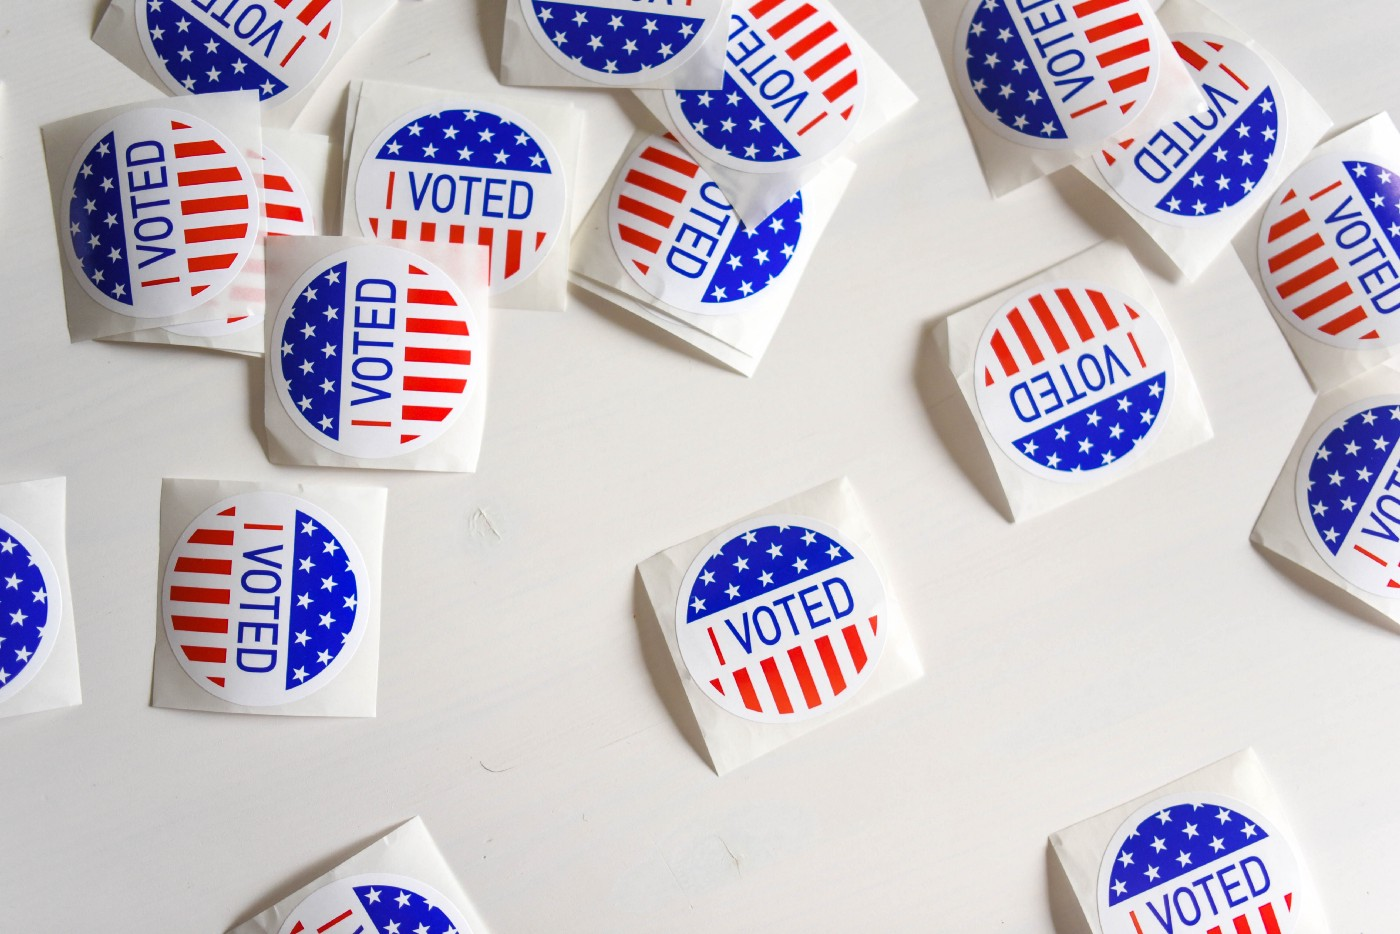 """I voted"" stickers donning US stars and stripes, scattered across a white tabletop"